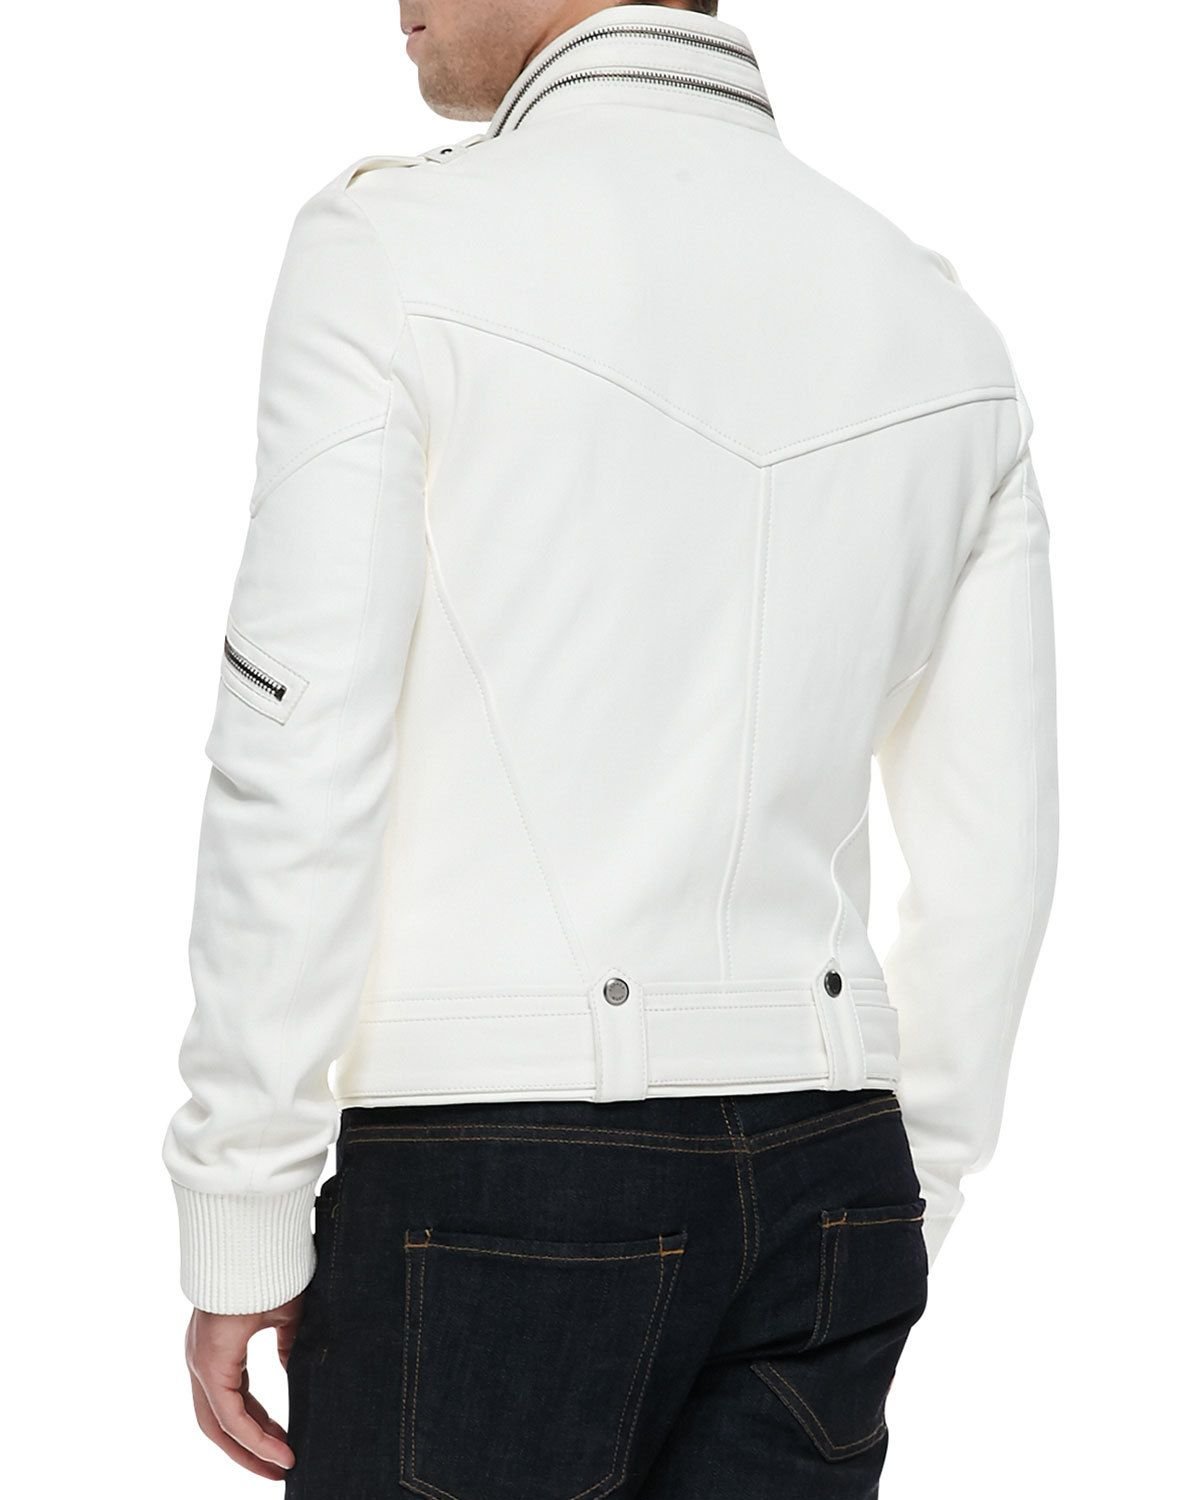 Za Jpg 1200 1500 Leather Jacket Men Men S Leather Jacket Jackets